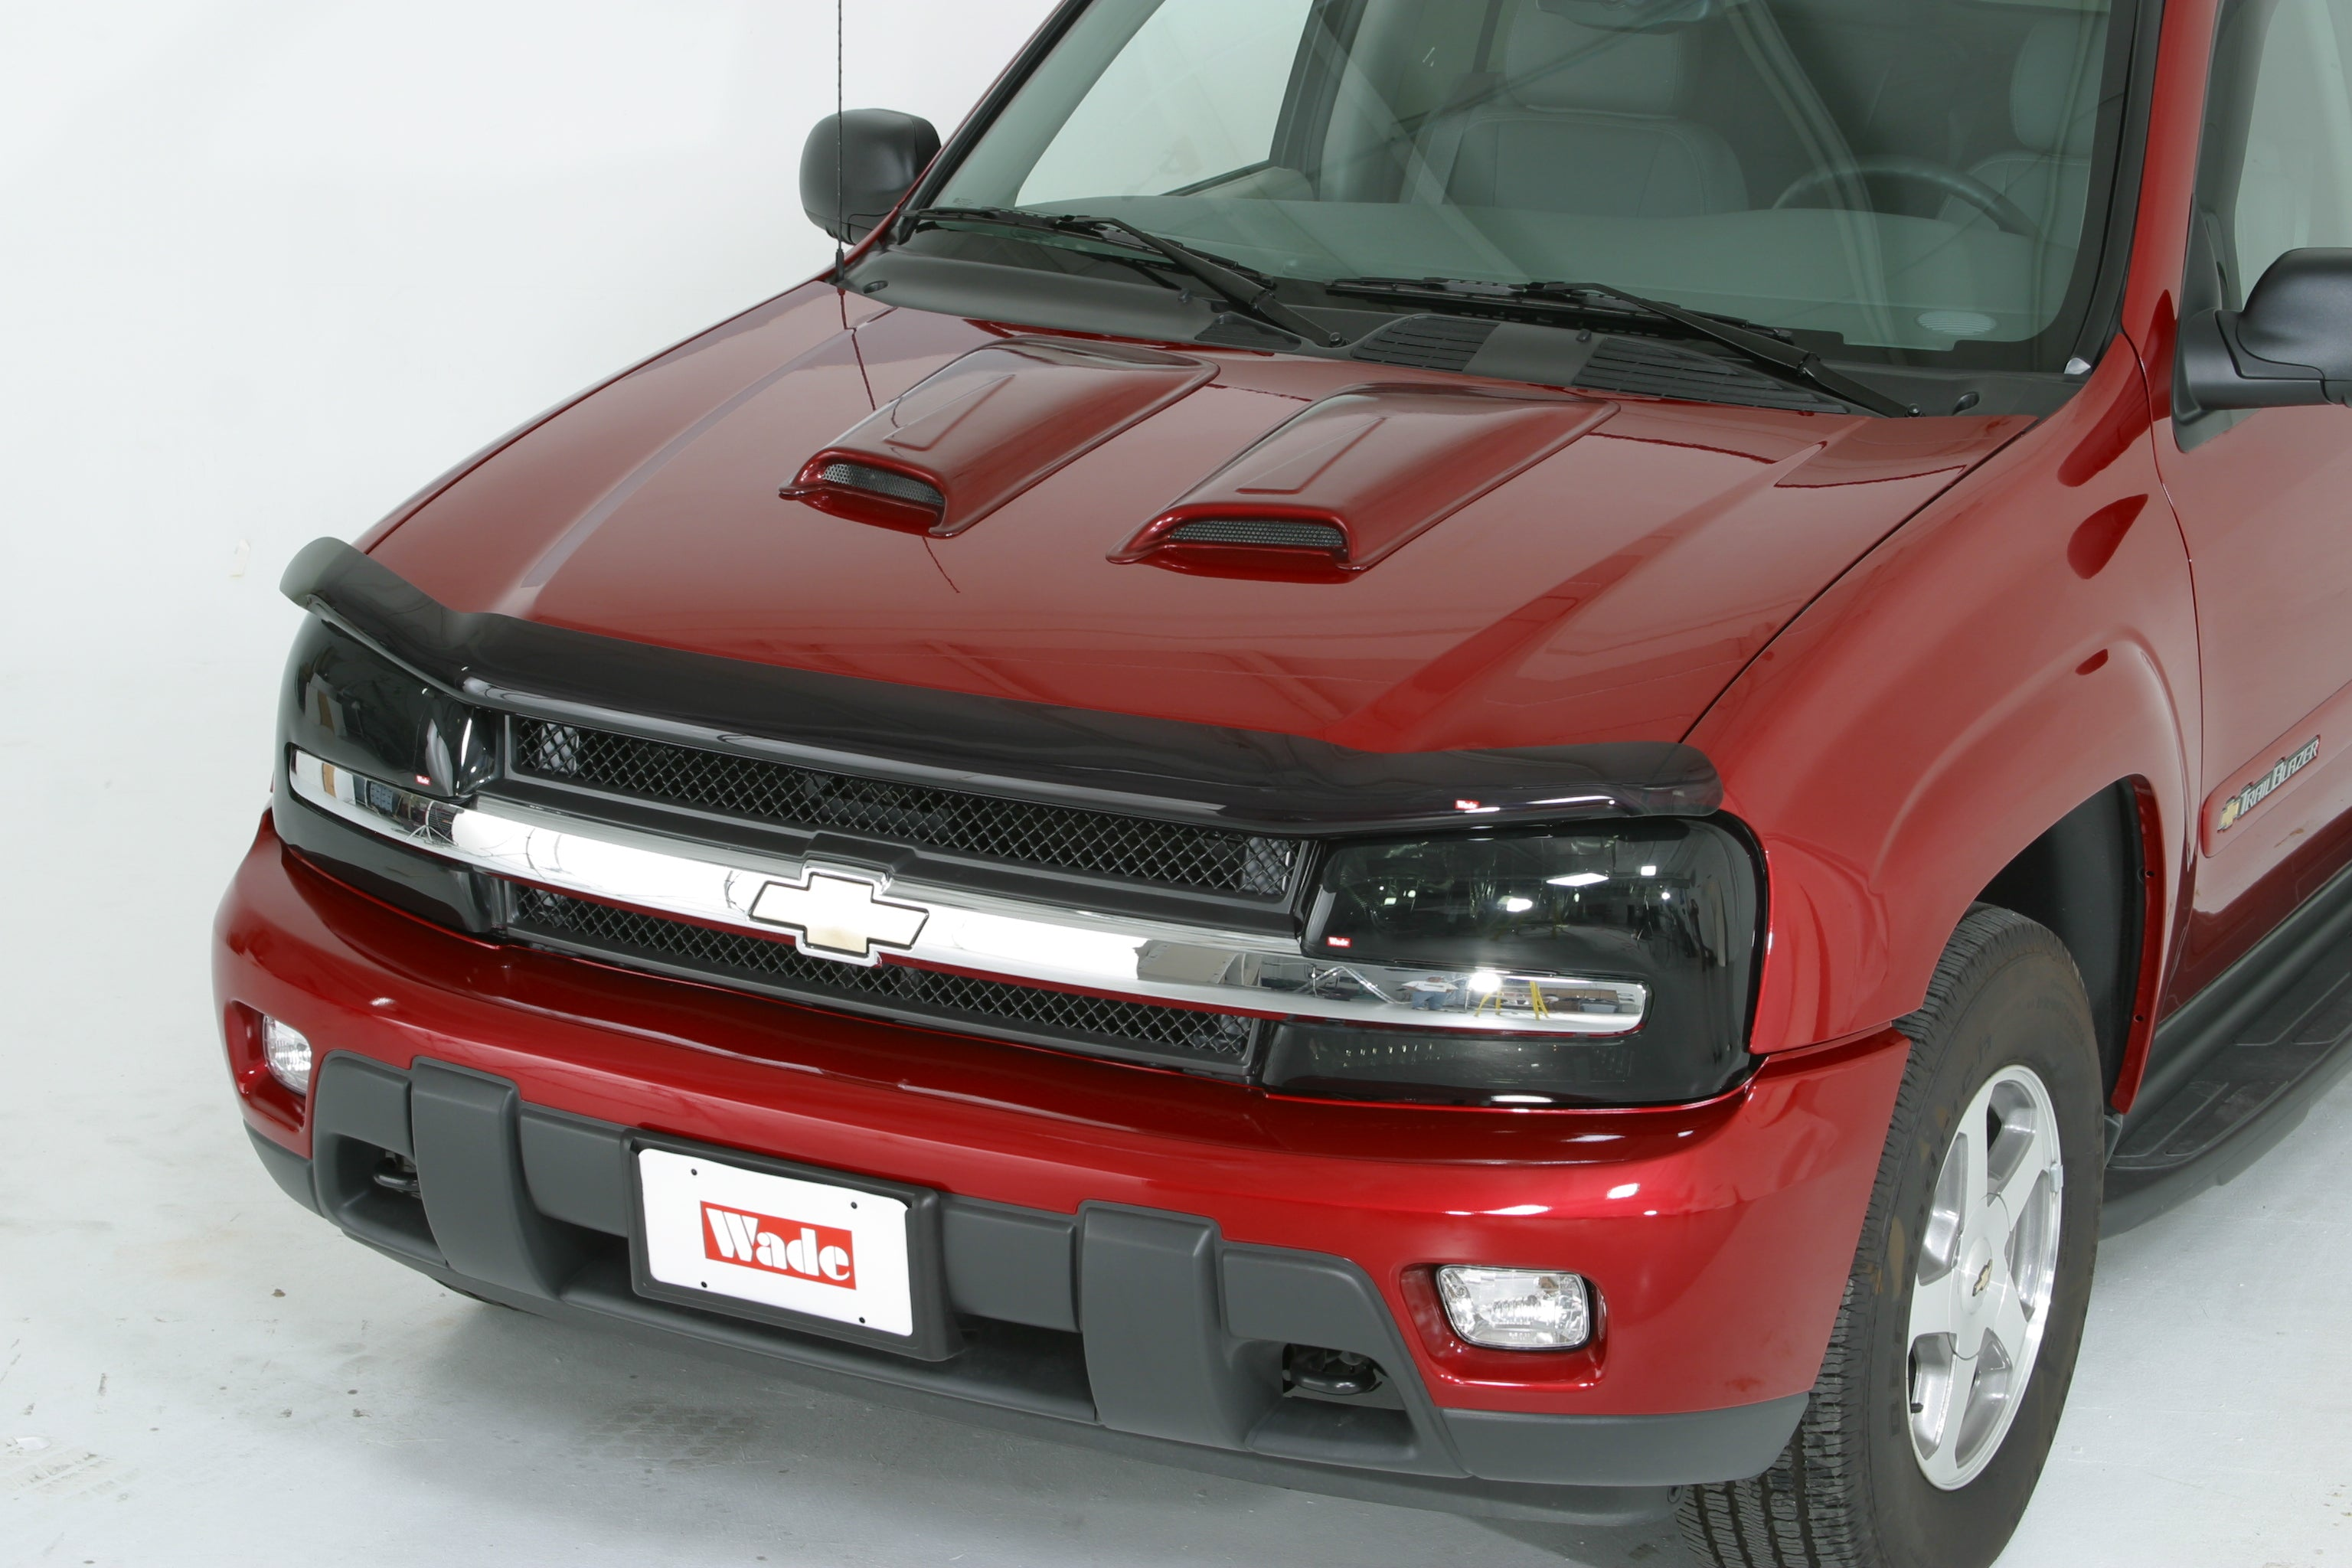 1989 Nissan Pickup 2WD (recessed light) Head Light Covers